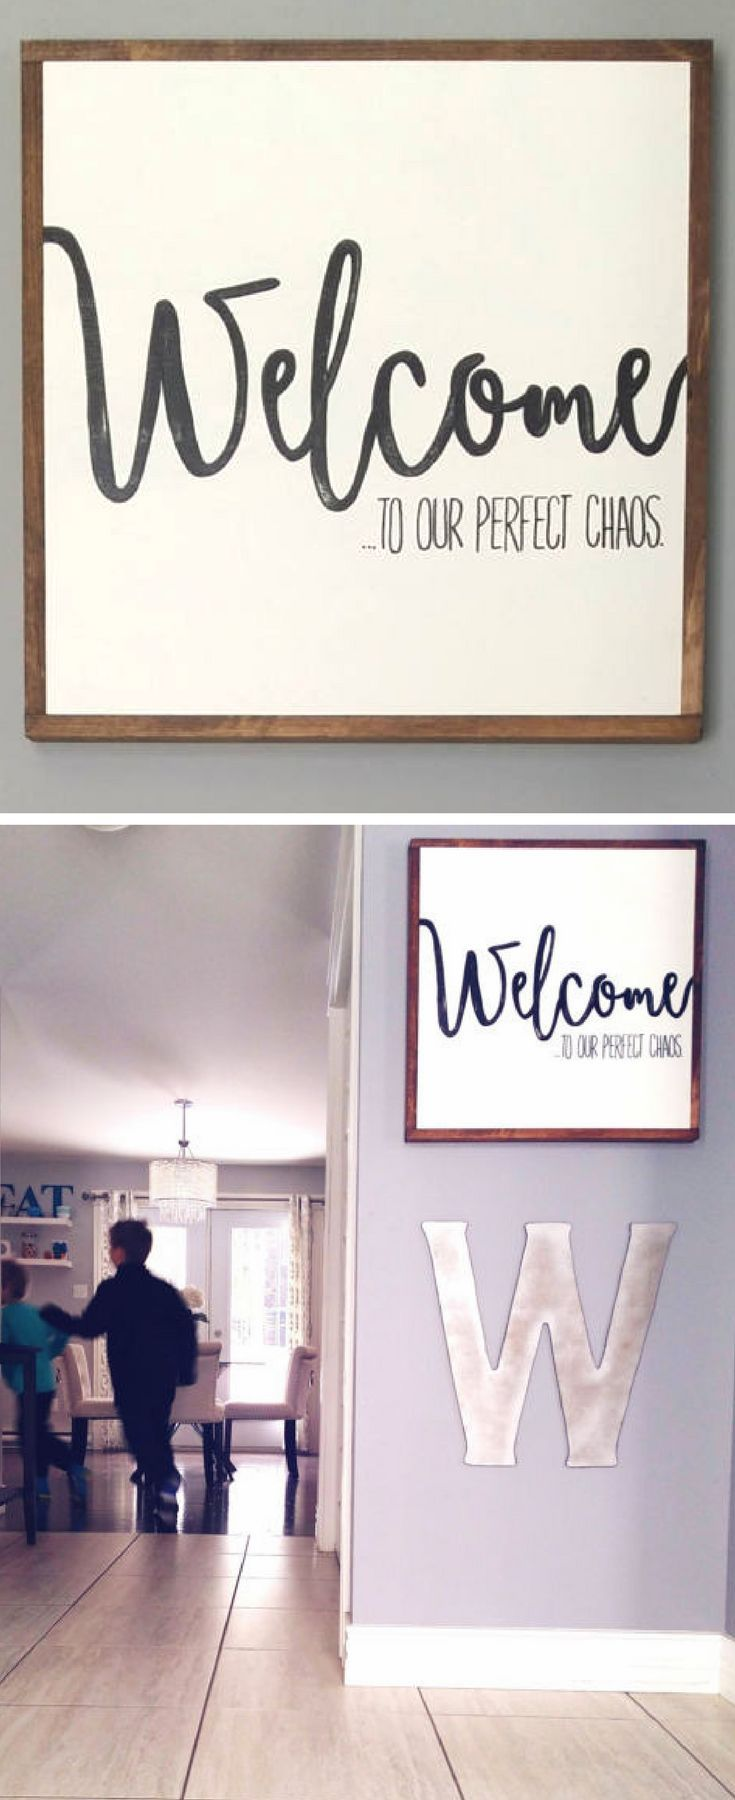 Such a perfect sign for any house that has young kids - it's always chaotic, but wouldn't have it any other way! Welcome to our perfect chaos wood sign, farmhouse sign, farmhouse decor, rustic sign, entryway sign, rustic decor, home decor, wall decor #ad